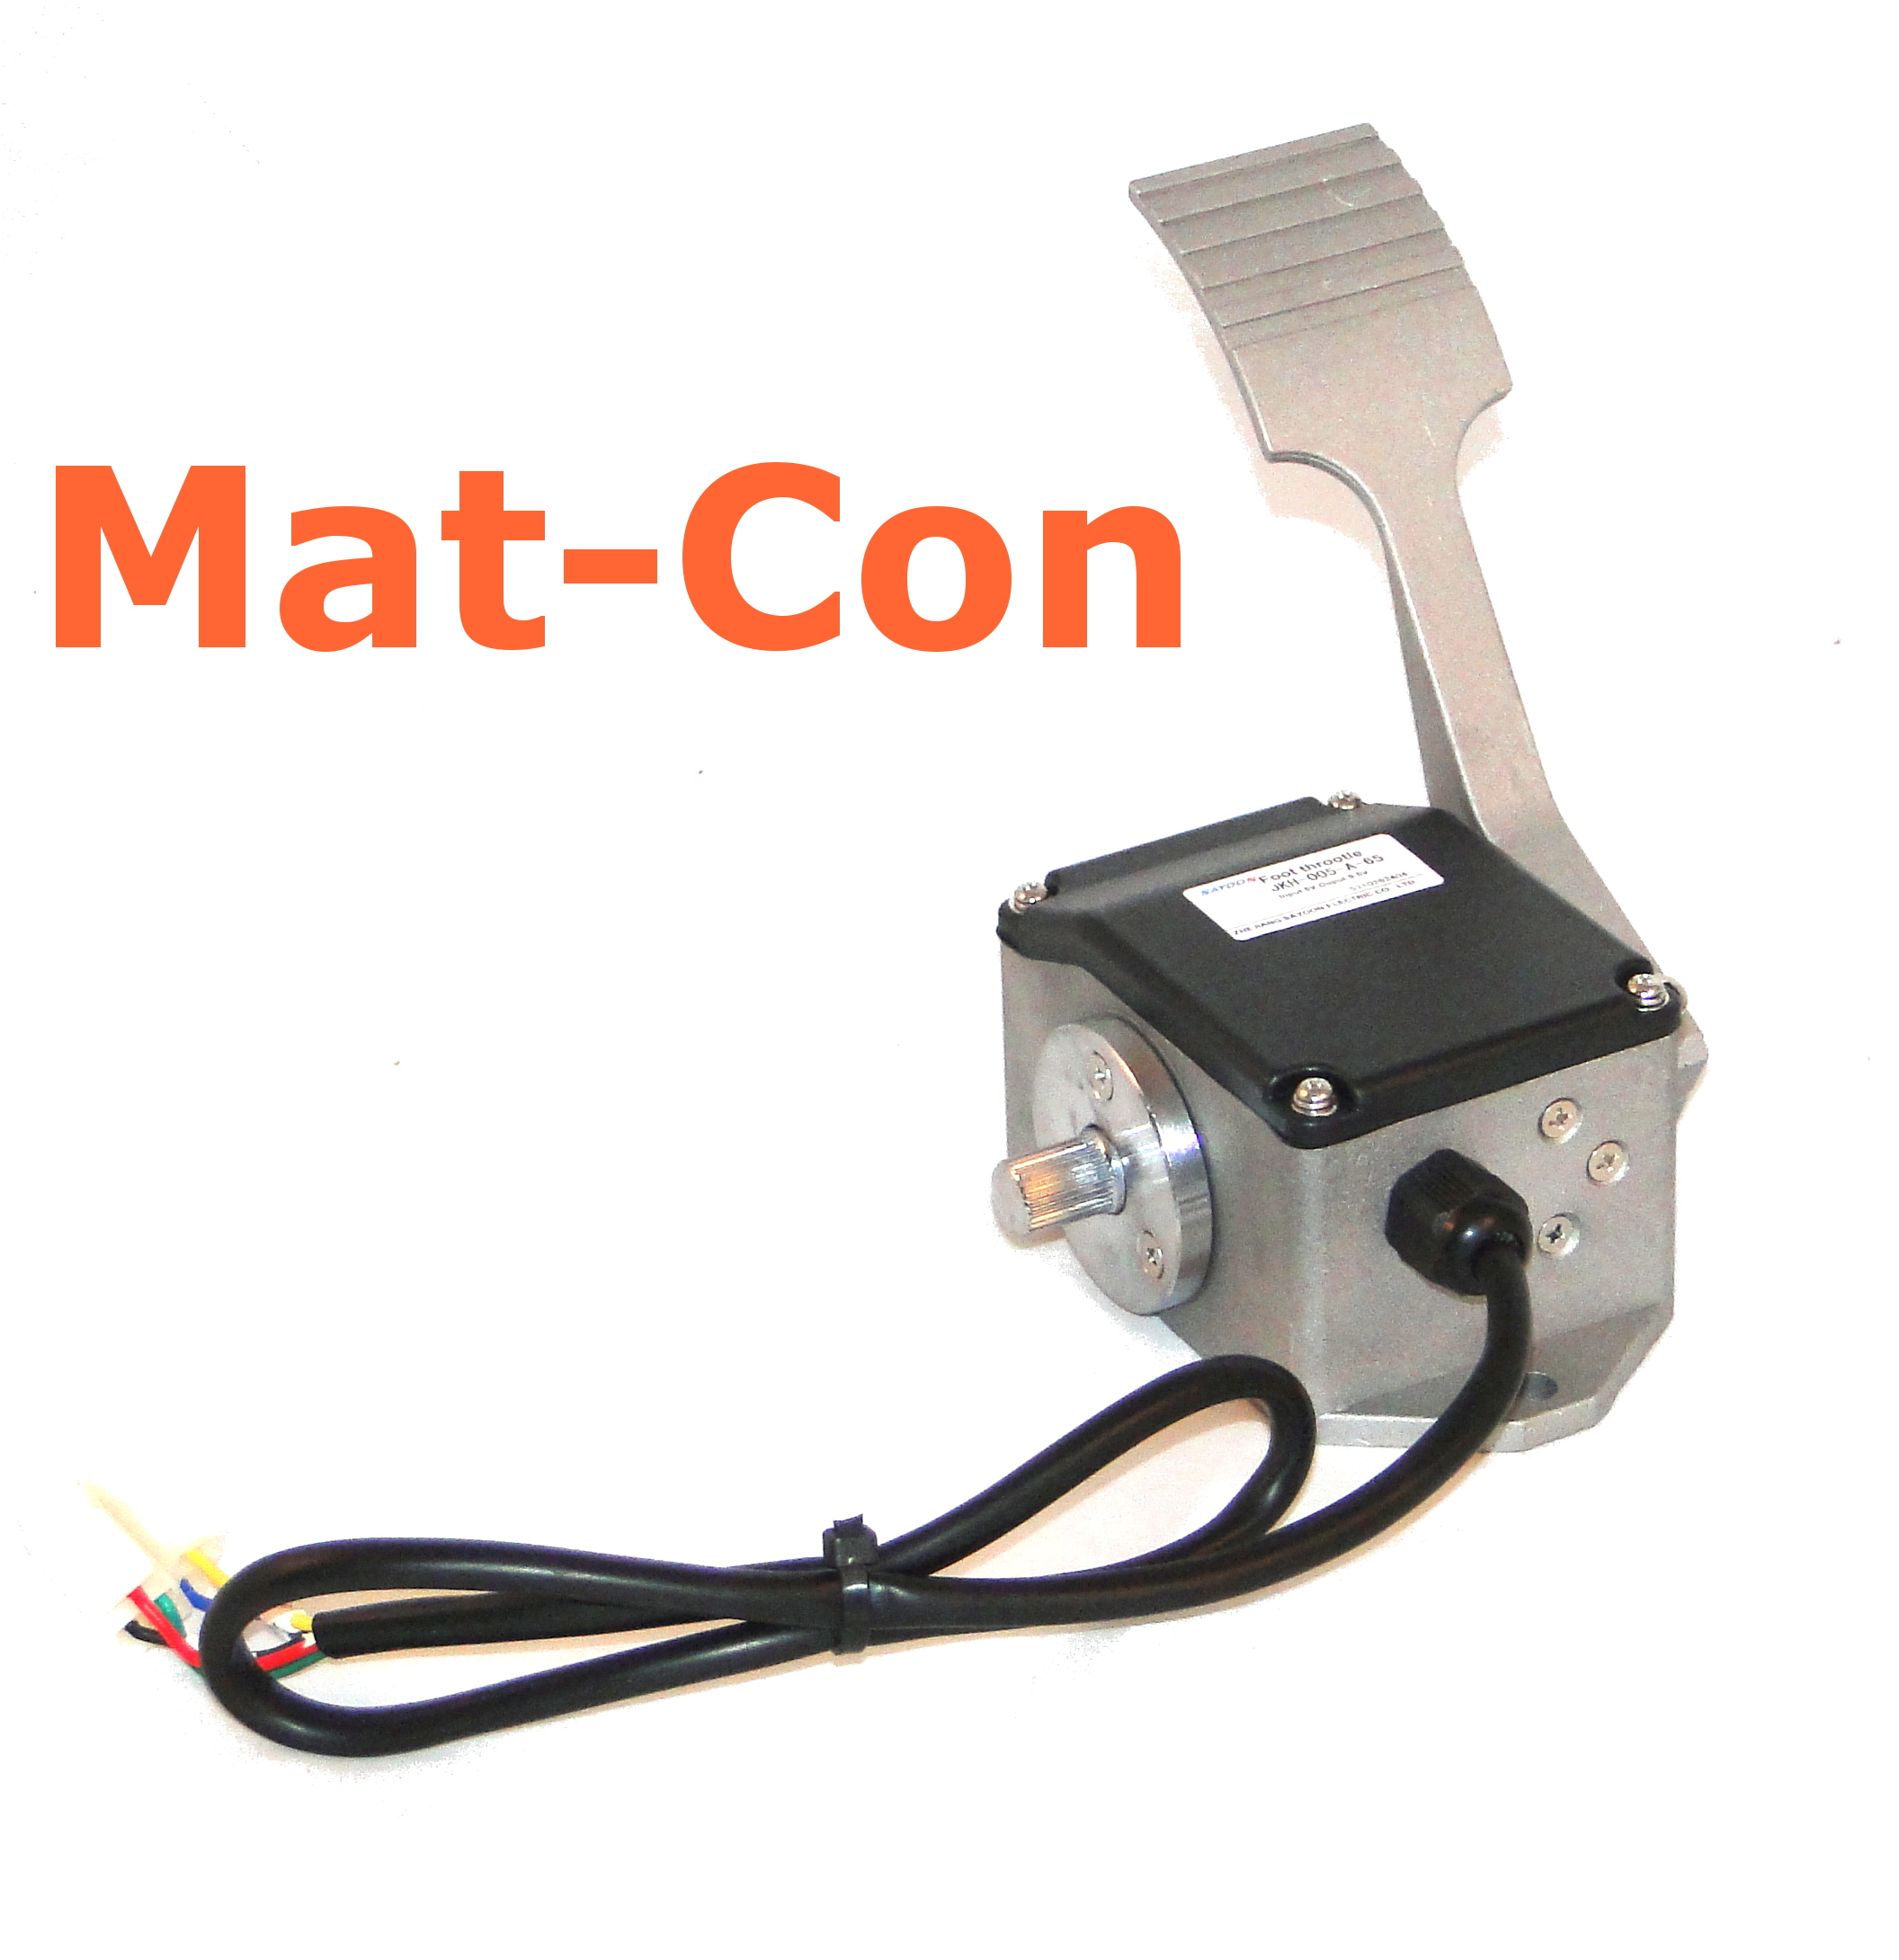 Mat-Con gas pedal foot pedal throttle with switch Sayoon JKH